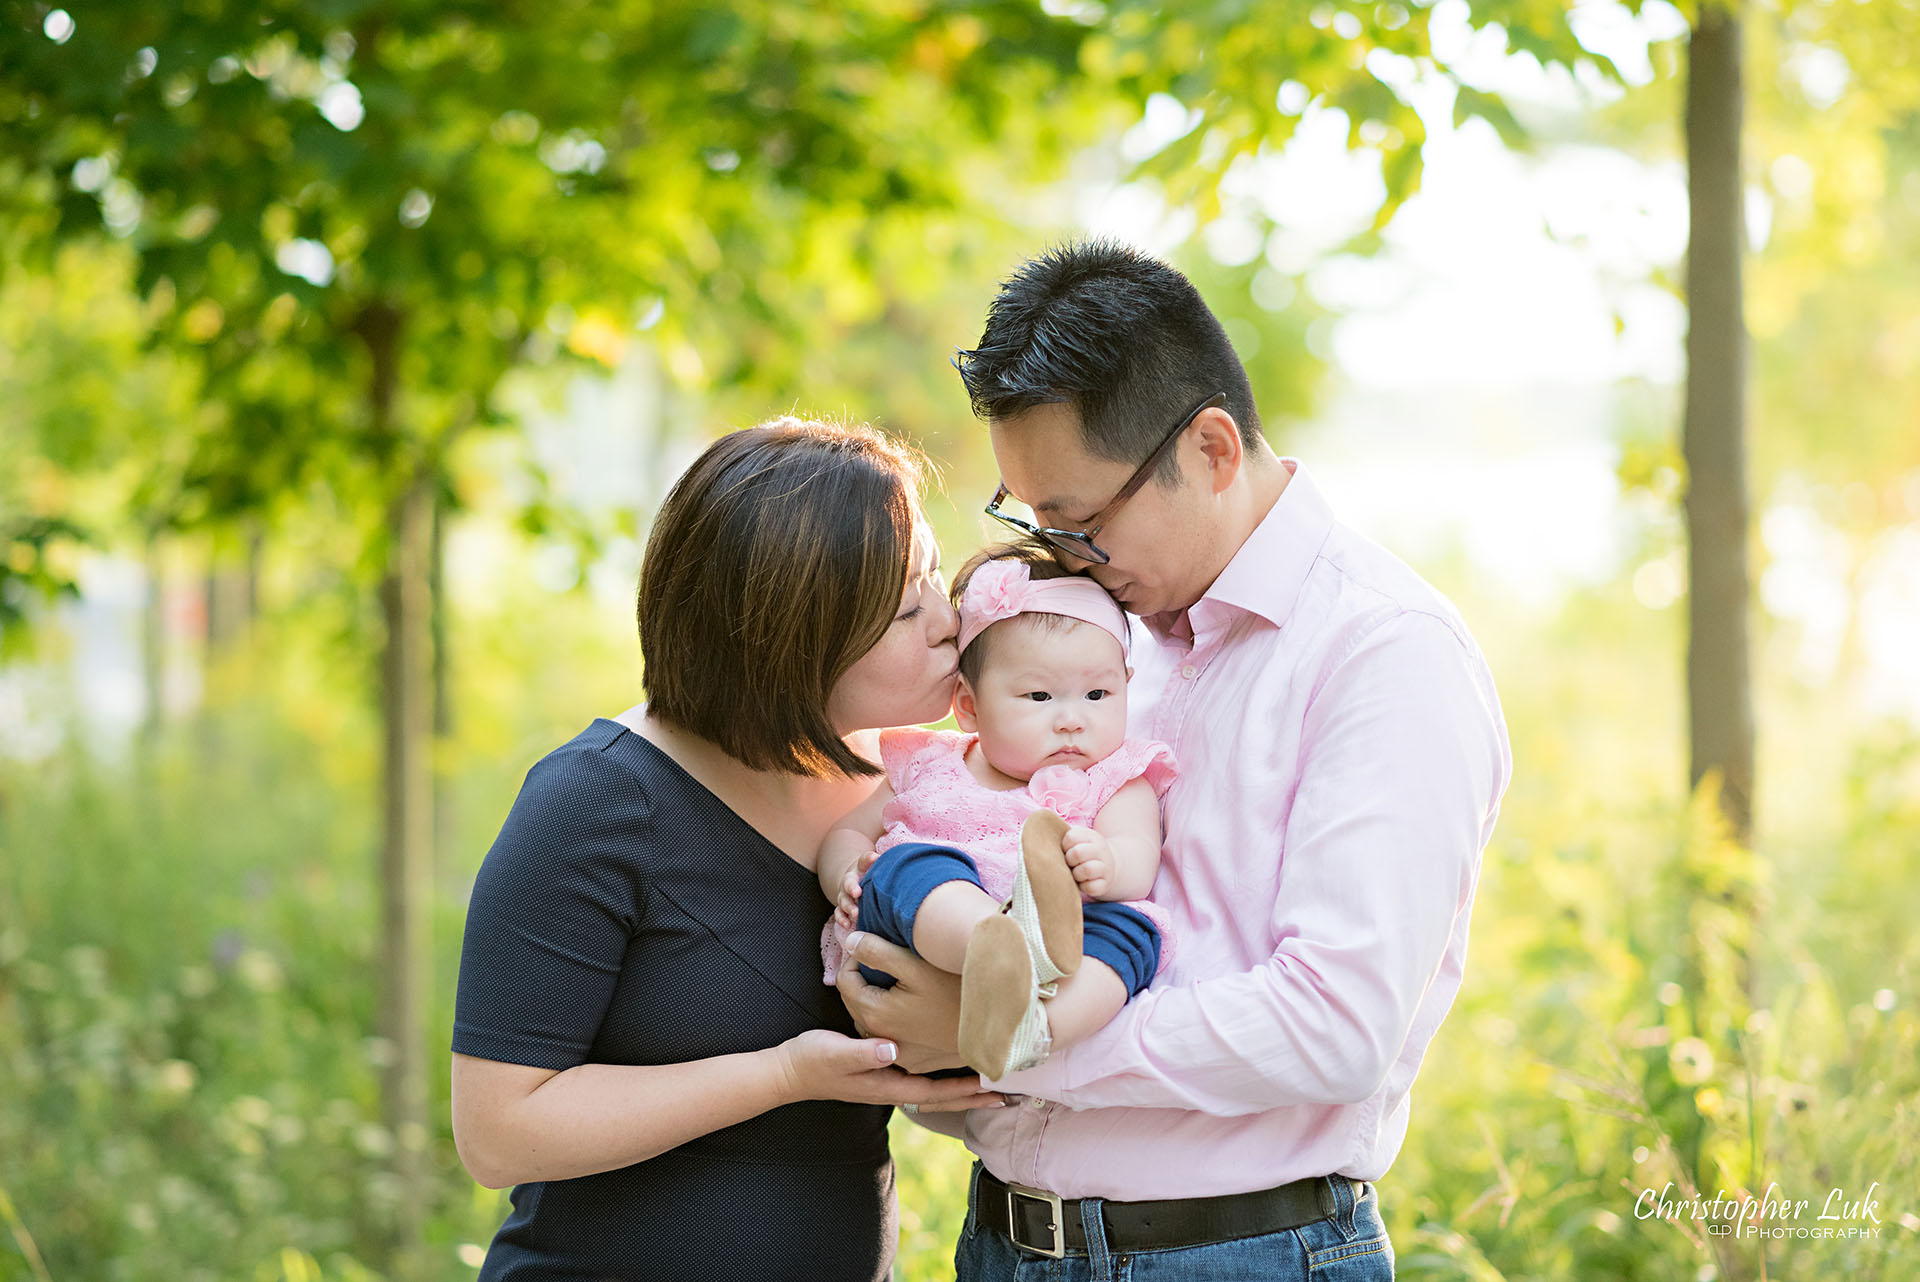 Christopher Luk Toronto Photographer Lake Wilcox Park Family Baby Newborn Richmond Hill Session Mother Mom Father Dad Husband Wife Daughter Sister Baby Hug Hold Kiss